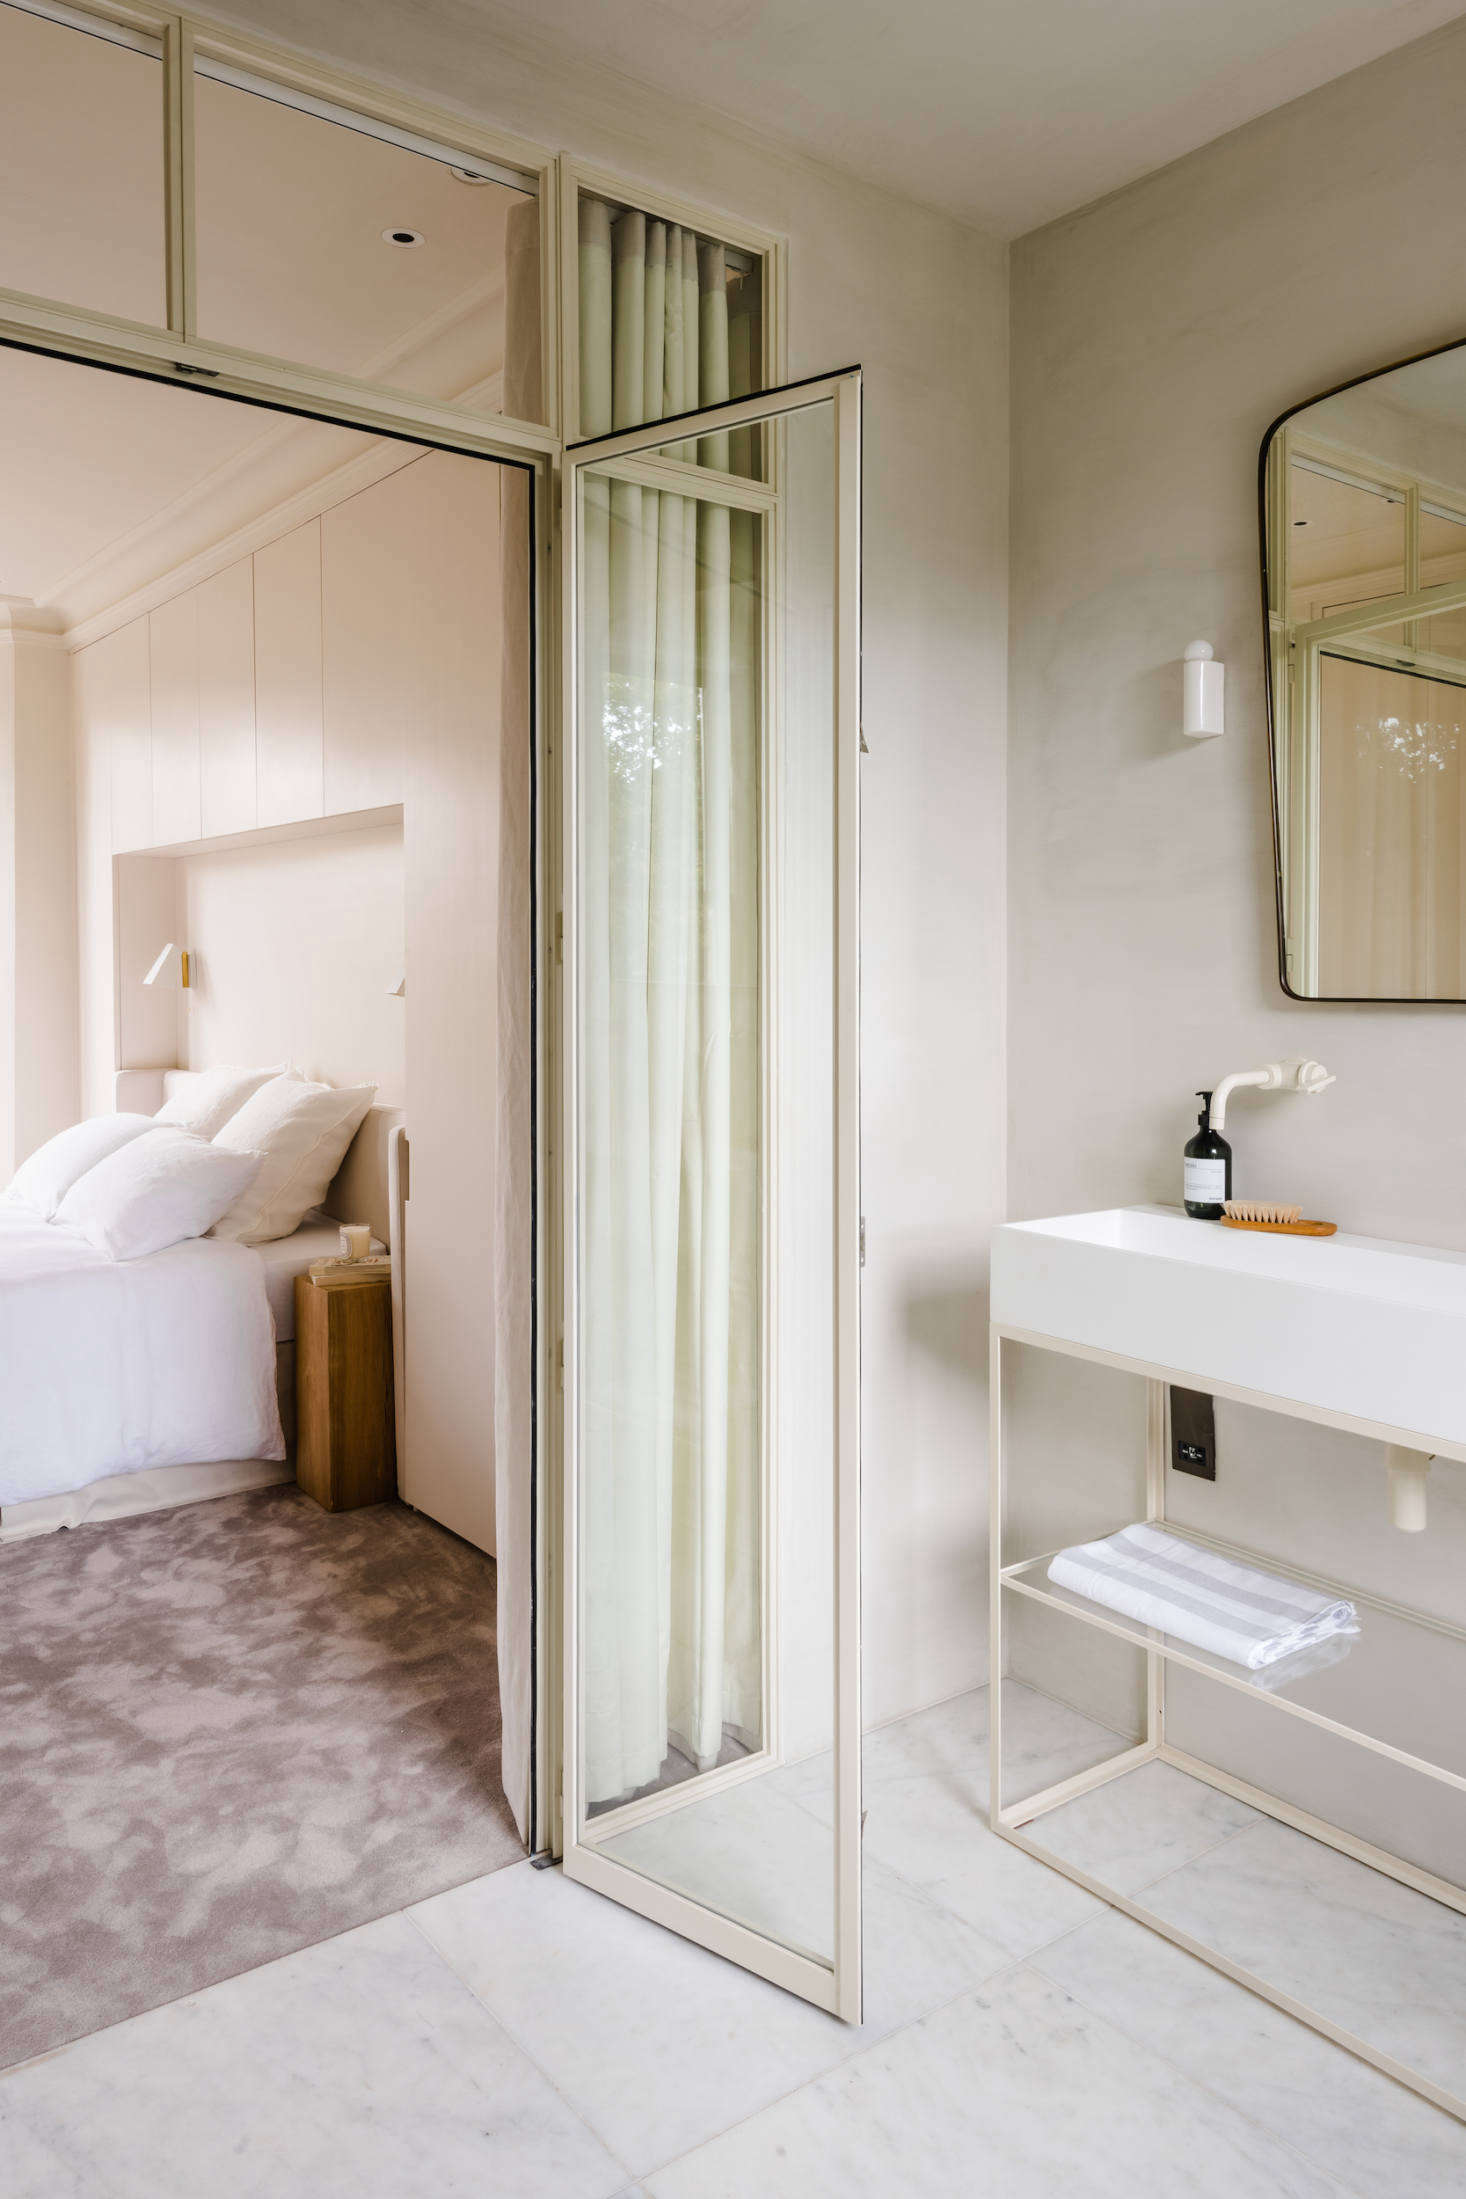 A Crittall steel and glass door separates the bedroom from the ensuite bath. &#8